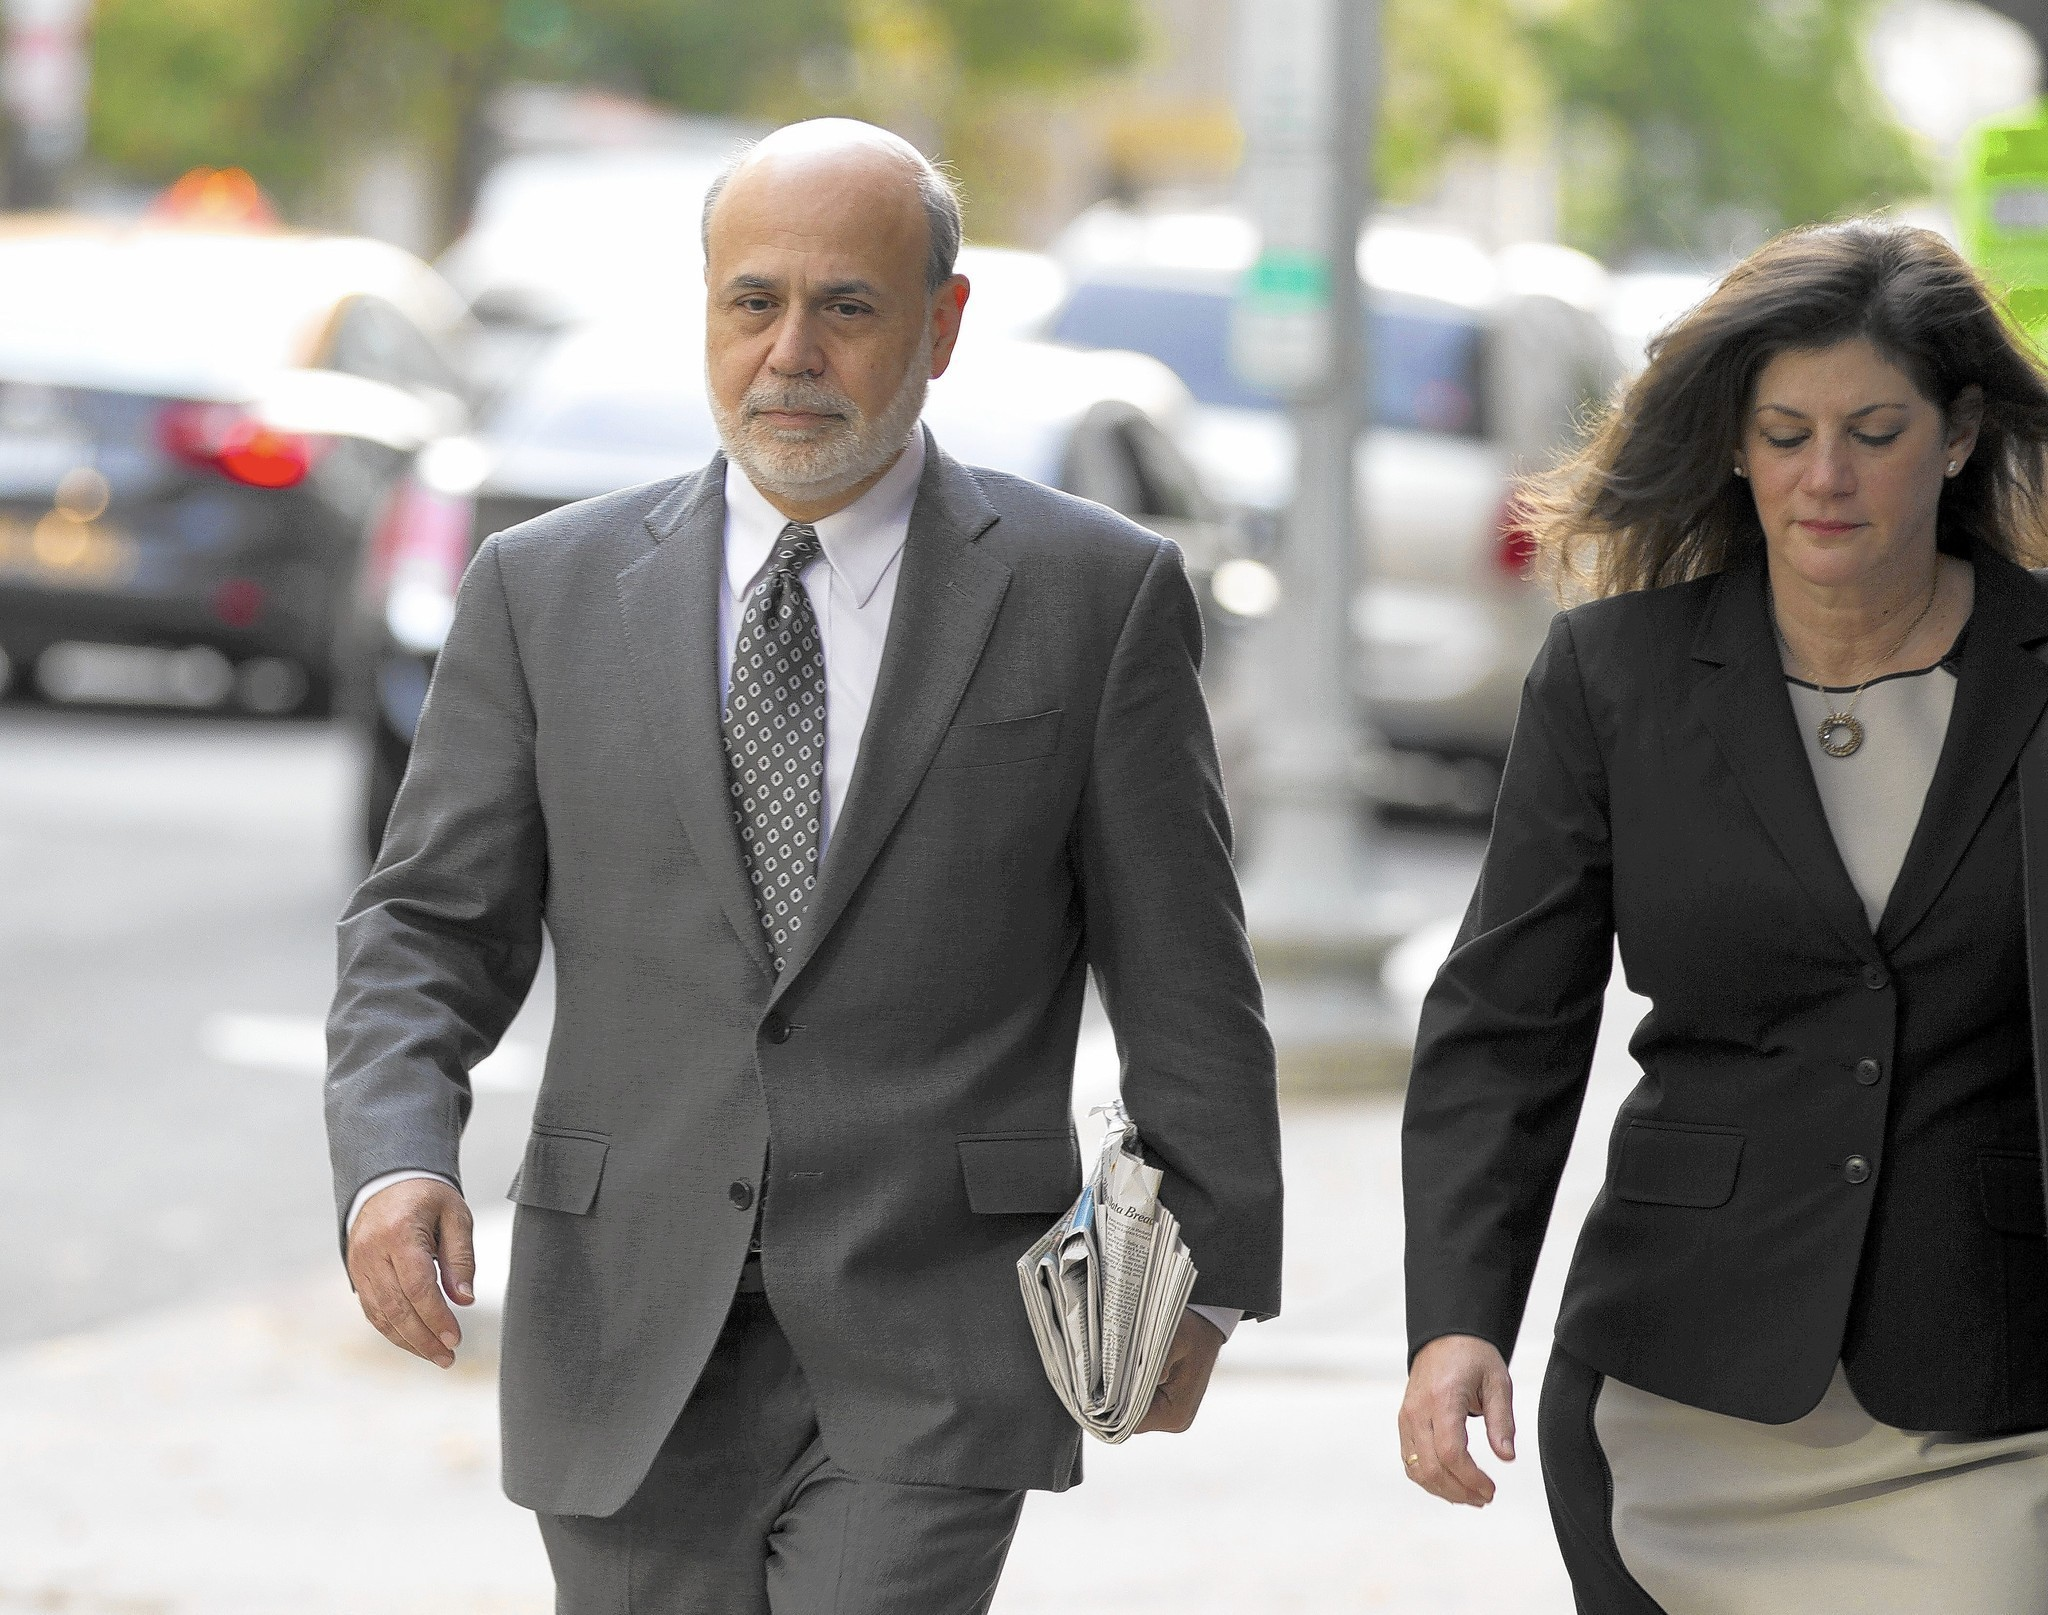 Former Fed chief Ben Bernanke defends AIG bailout in court